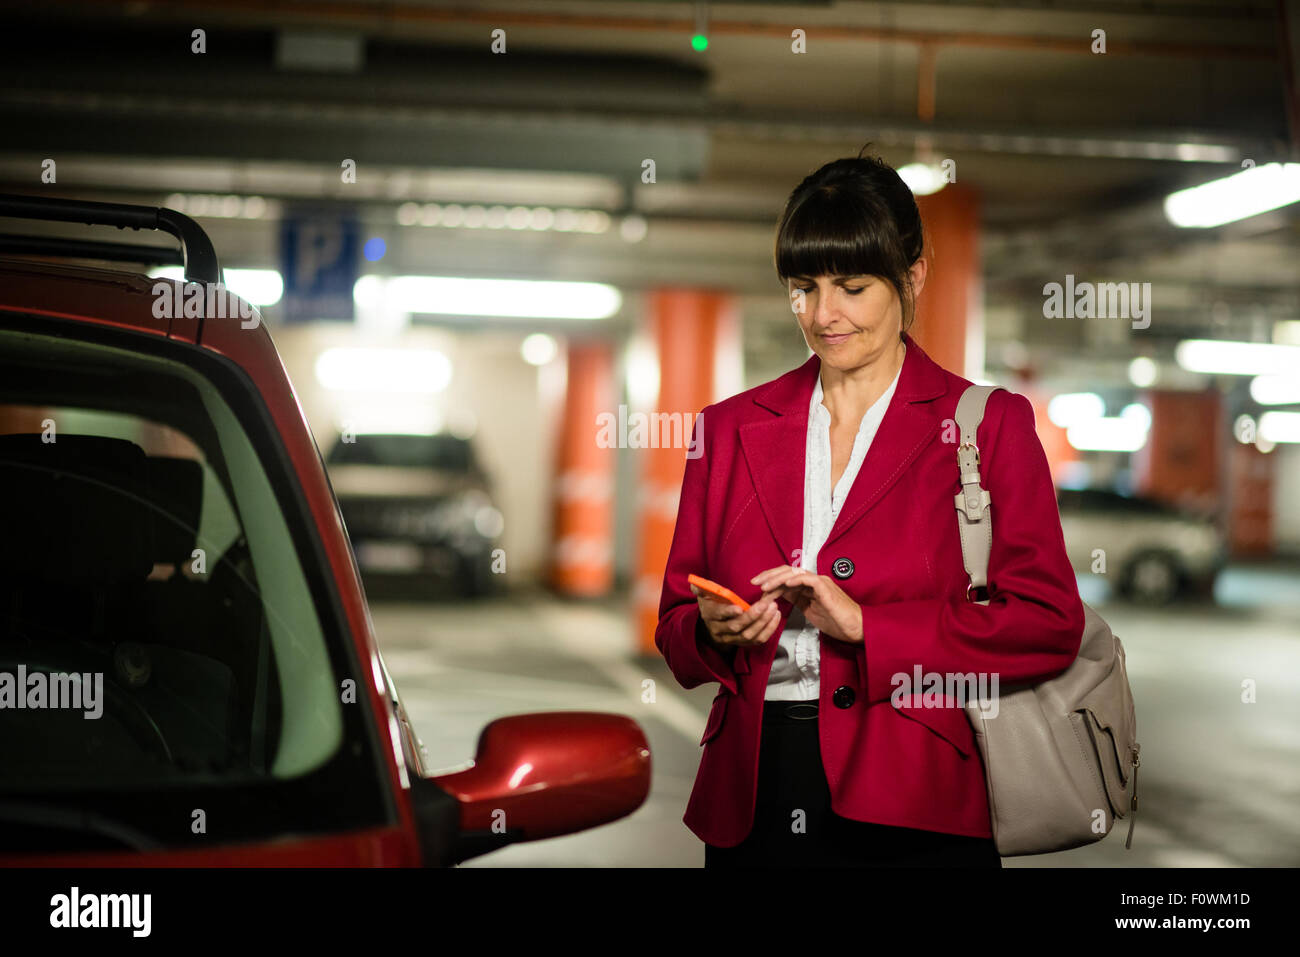 Senior business woman looking to her mobile phone while standing at her car - Stock Image